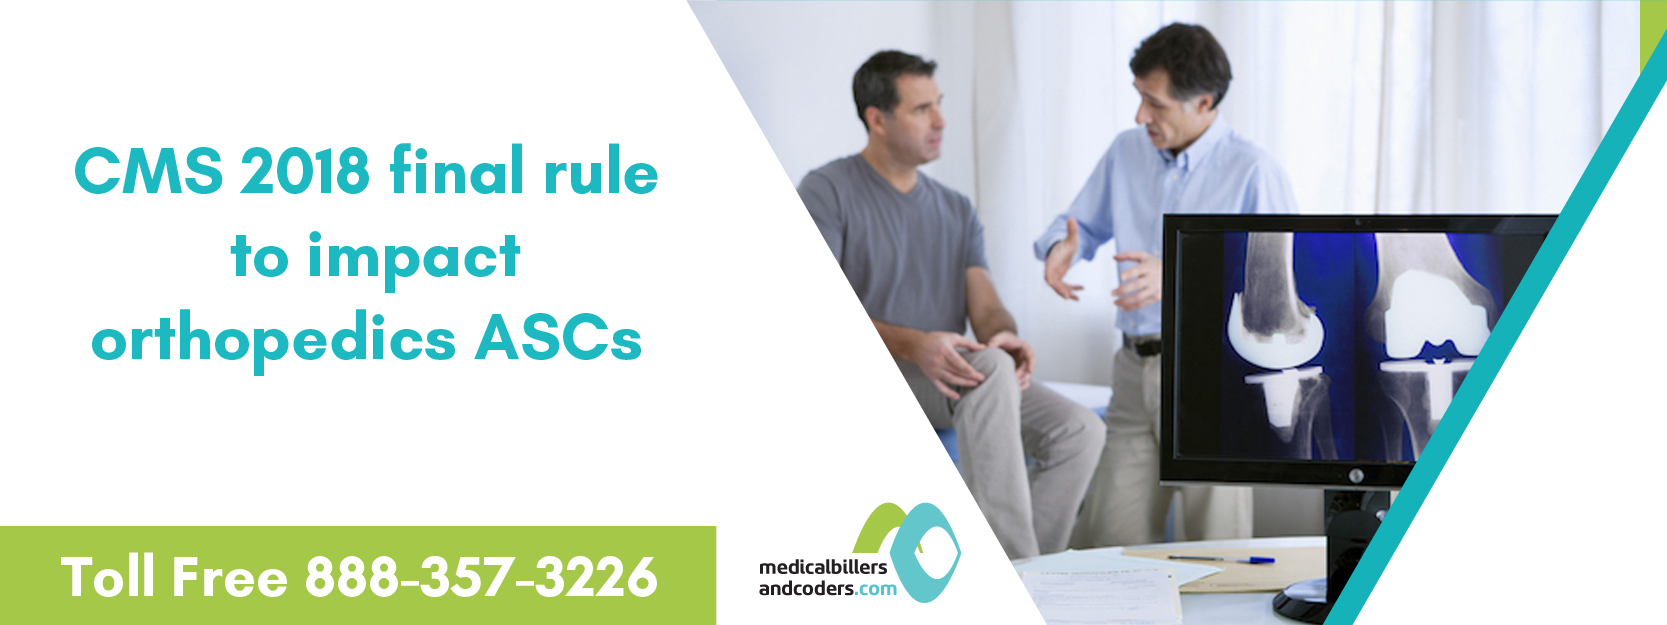 CMS-2018-final-rule-to-impact-orthopedics-ASCs